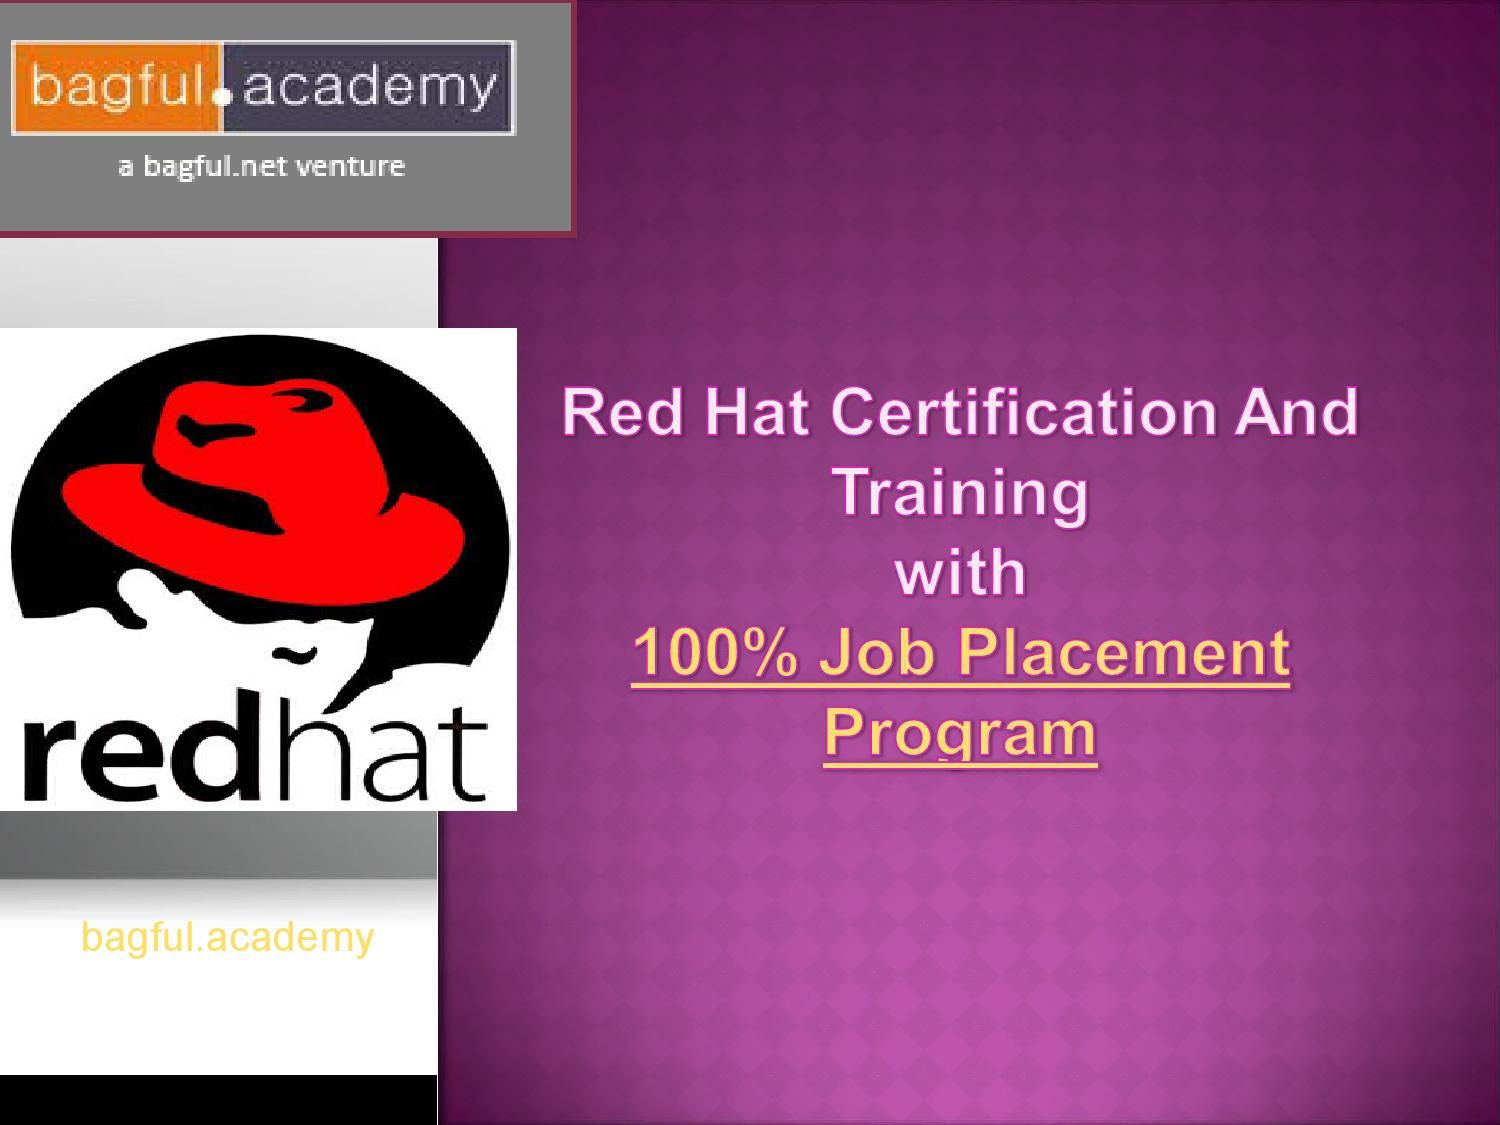 job placement certification hat offers program issuu bagful academy redhat certificate